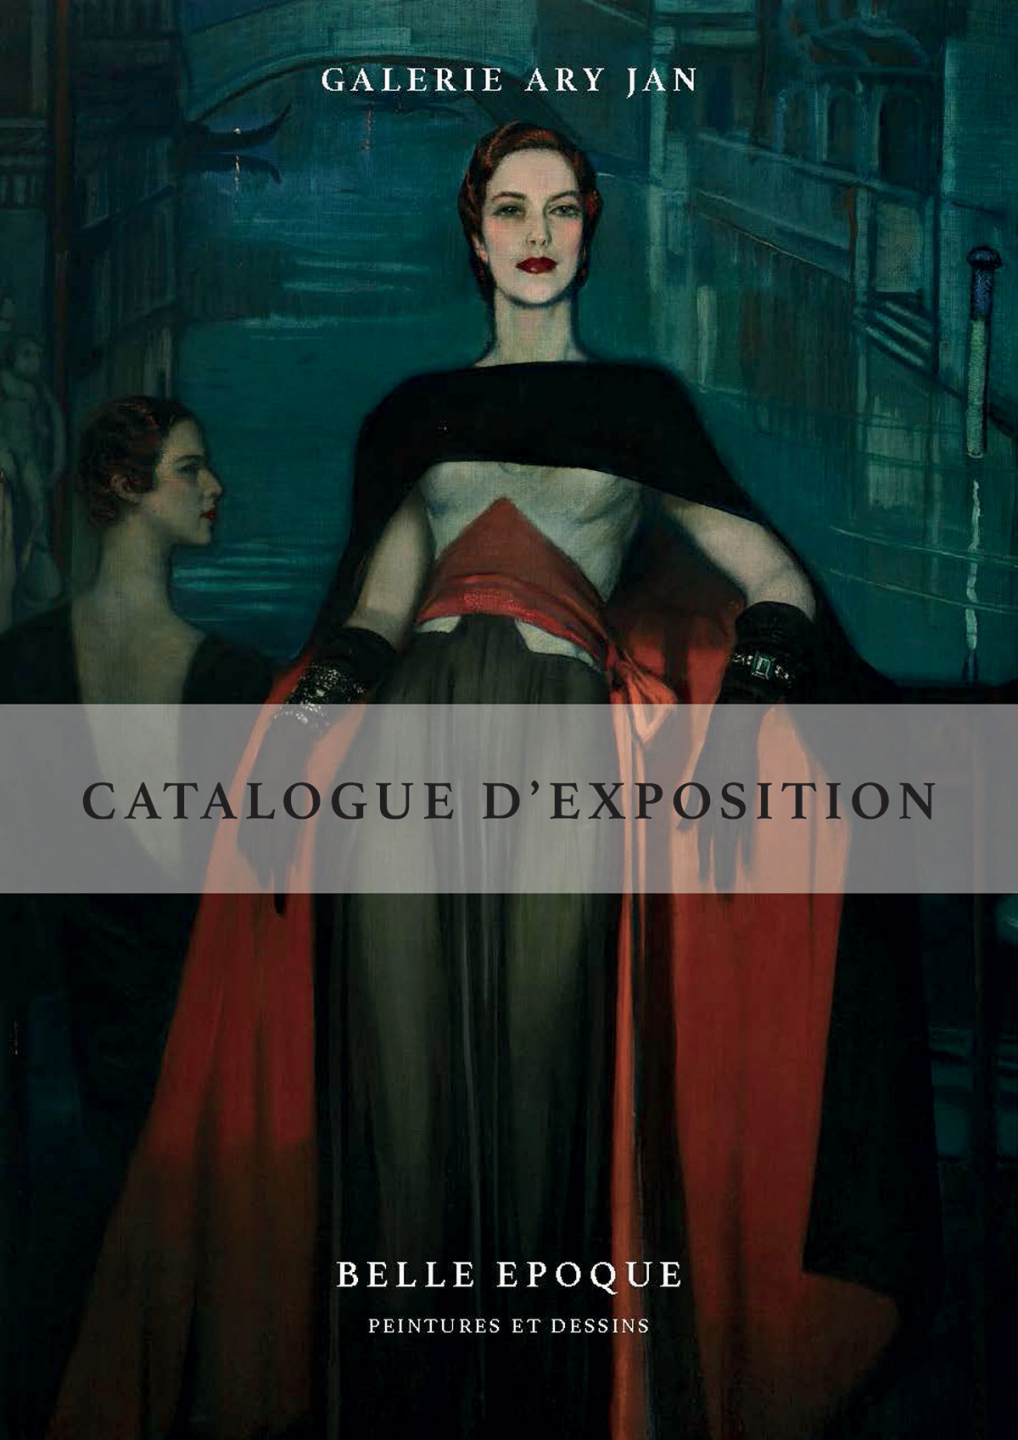 Belle Epoque - Paintings and drawings